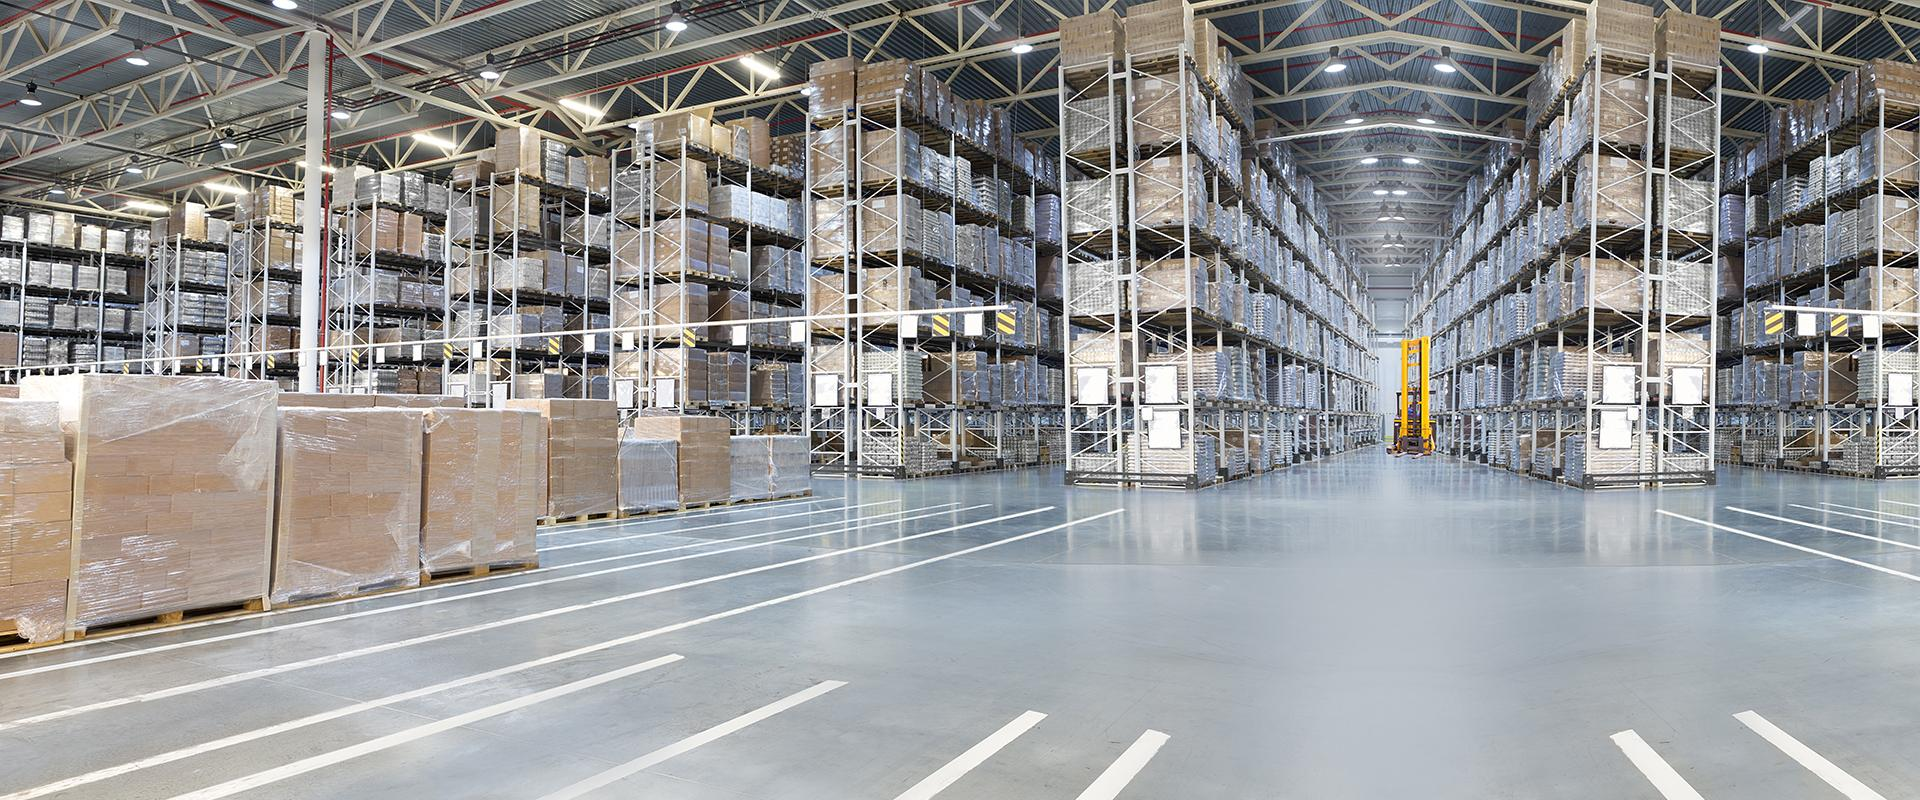 inside a large commercial storage building